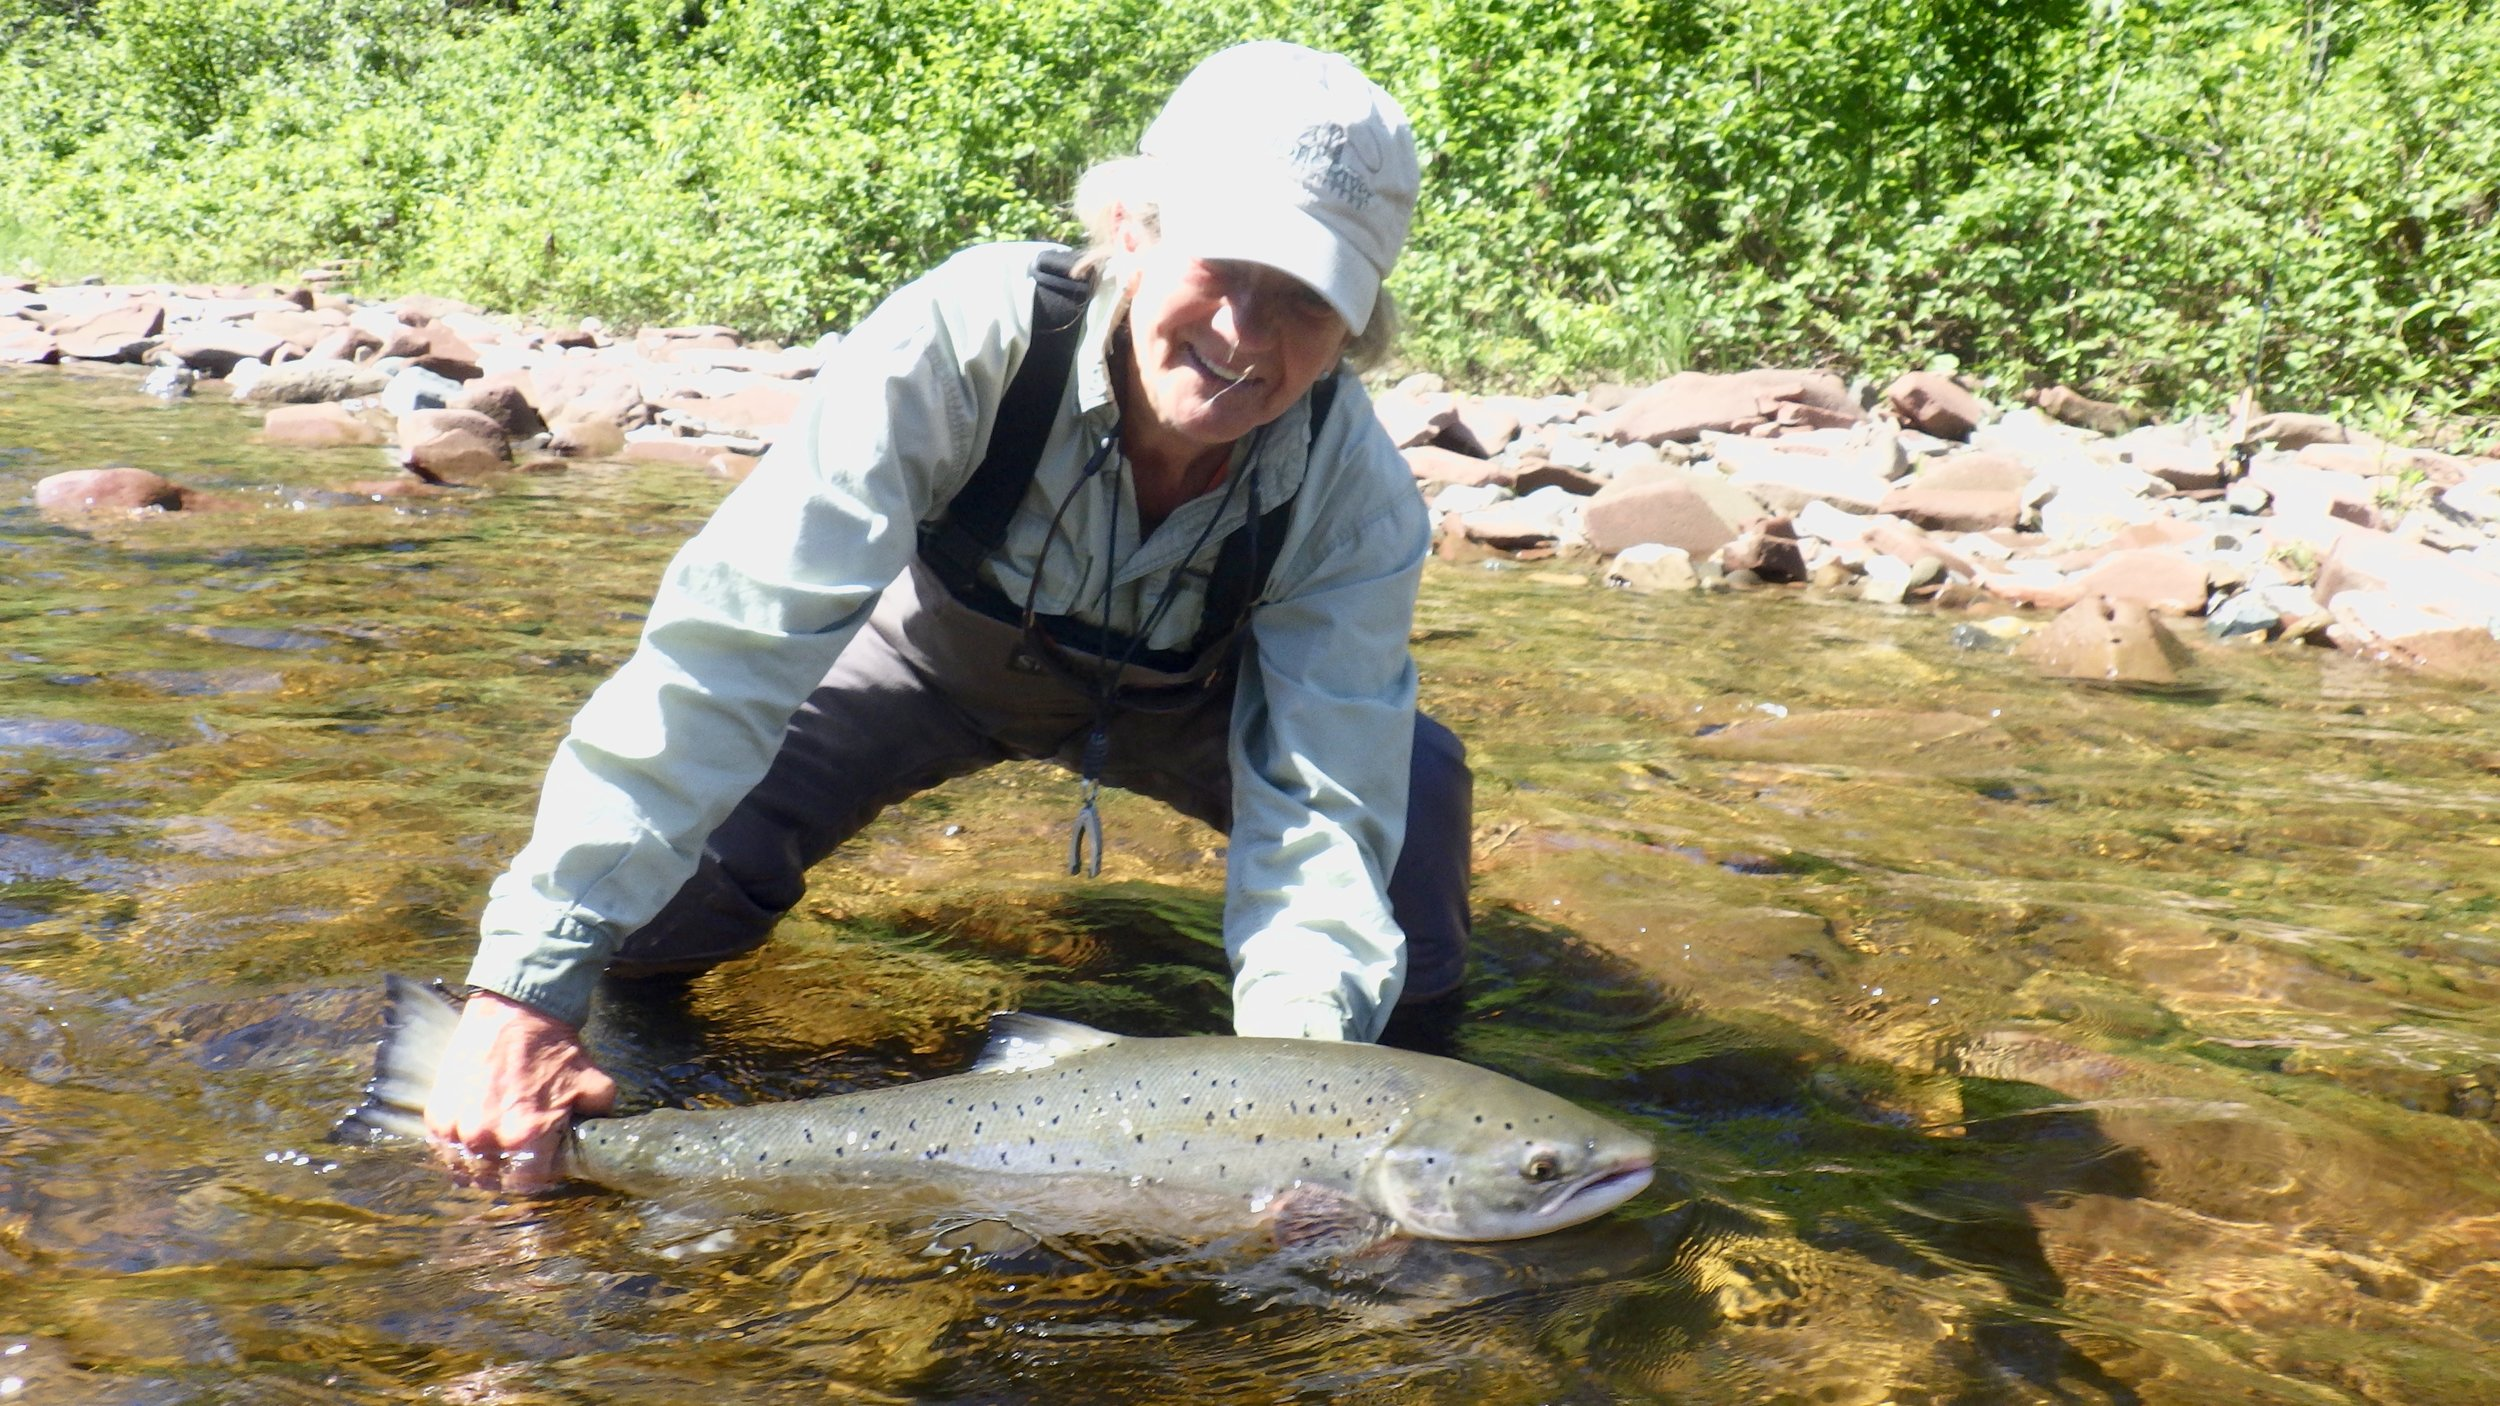 Suzie Moore has been part of Camp Bonaventure since day one! here she is again with another fins salmon. Welcome home Suzie!